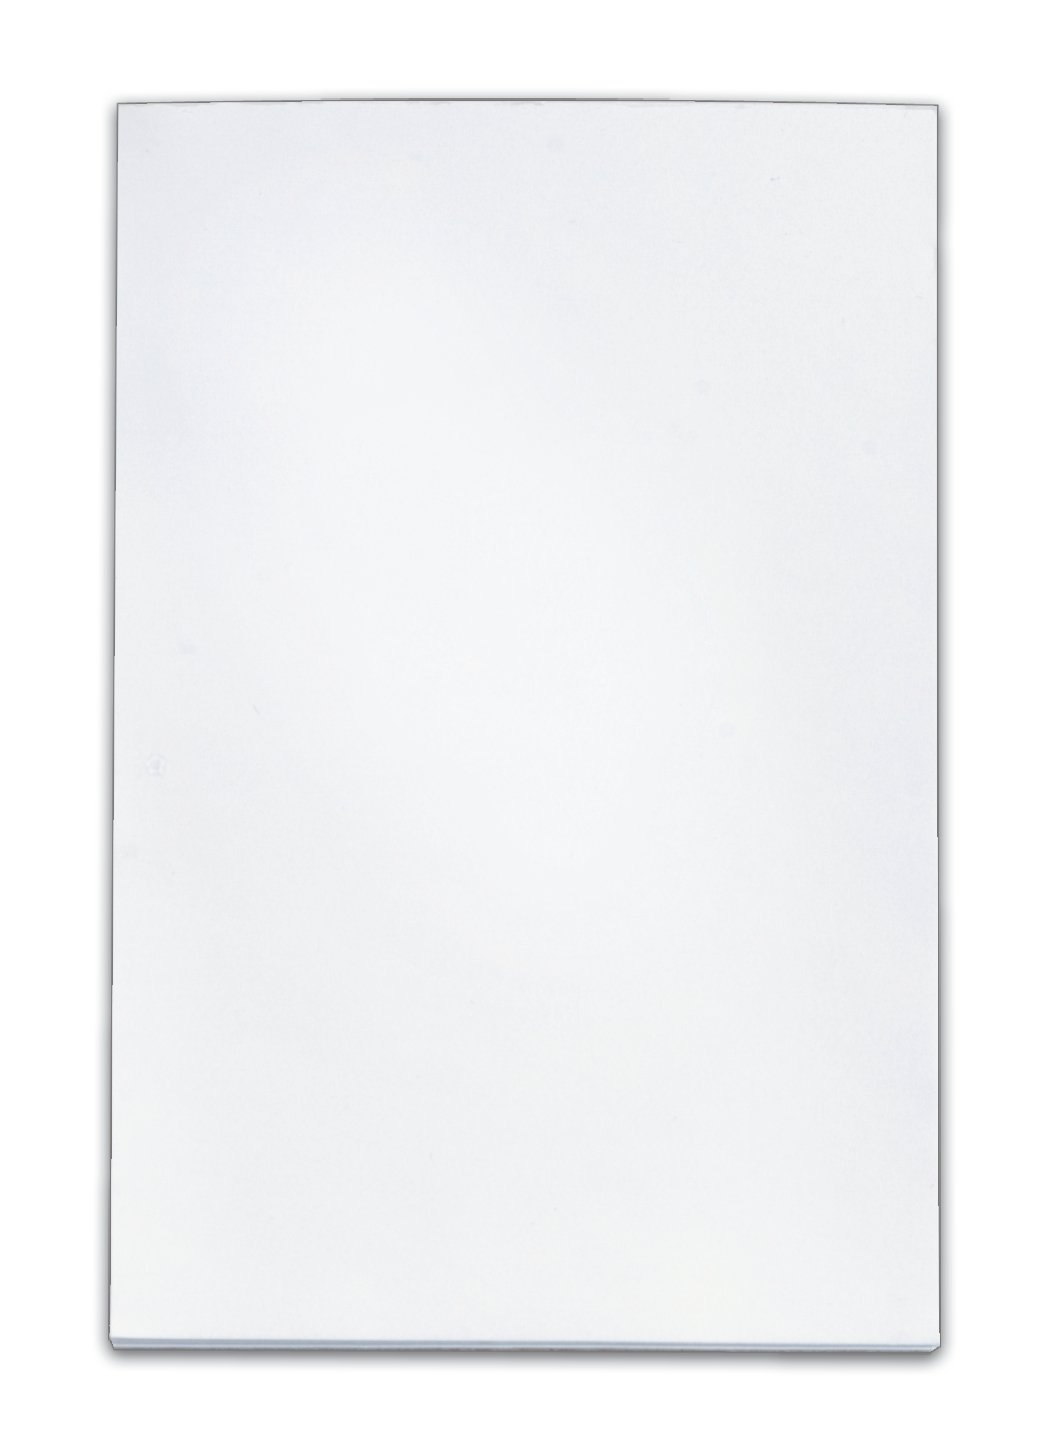 TOPS Memo Pads, 4 x 6 Inches, White, 100 Sheets per Pad, 112 Pads per Carton (7831) by TOPS